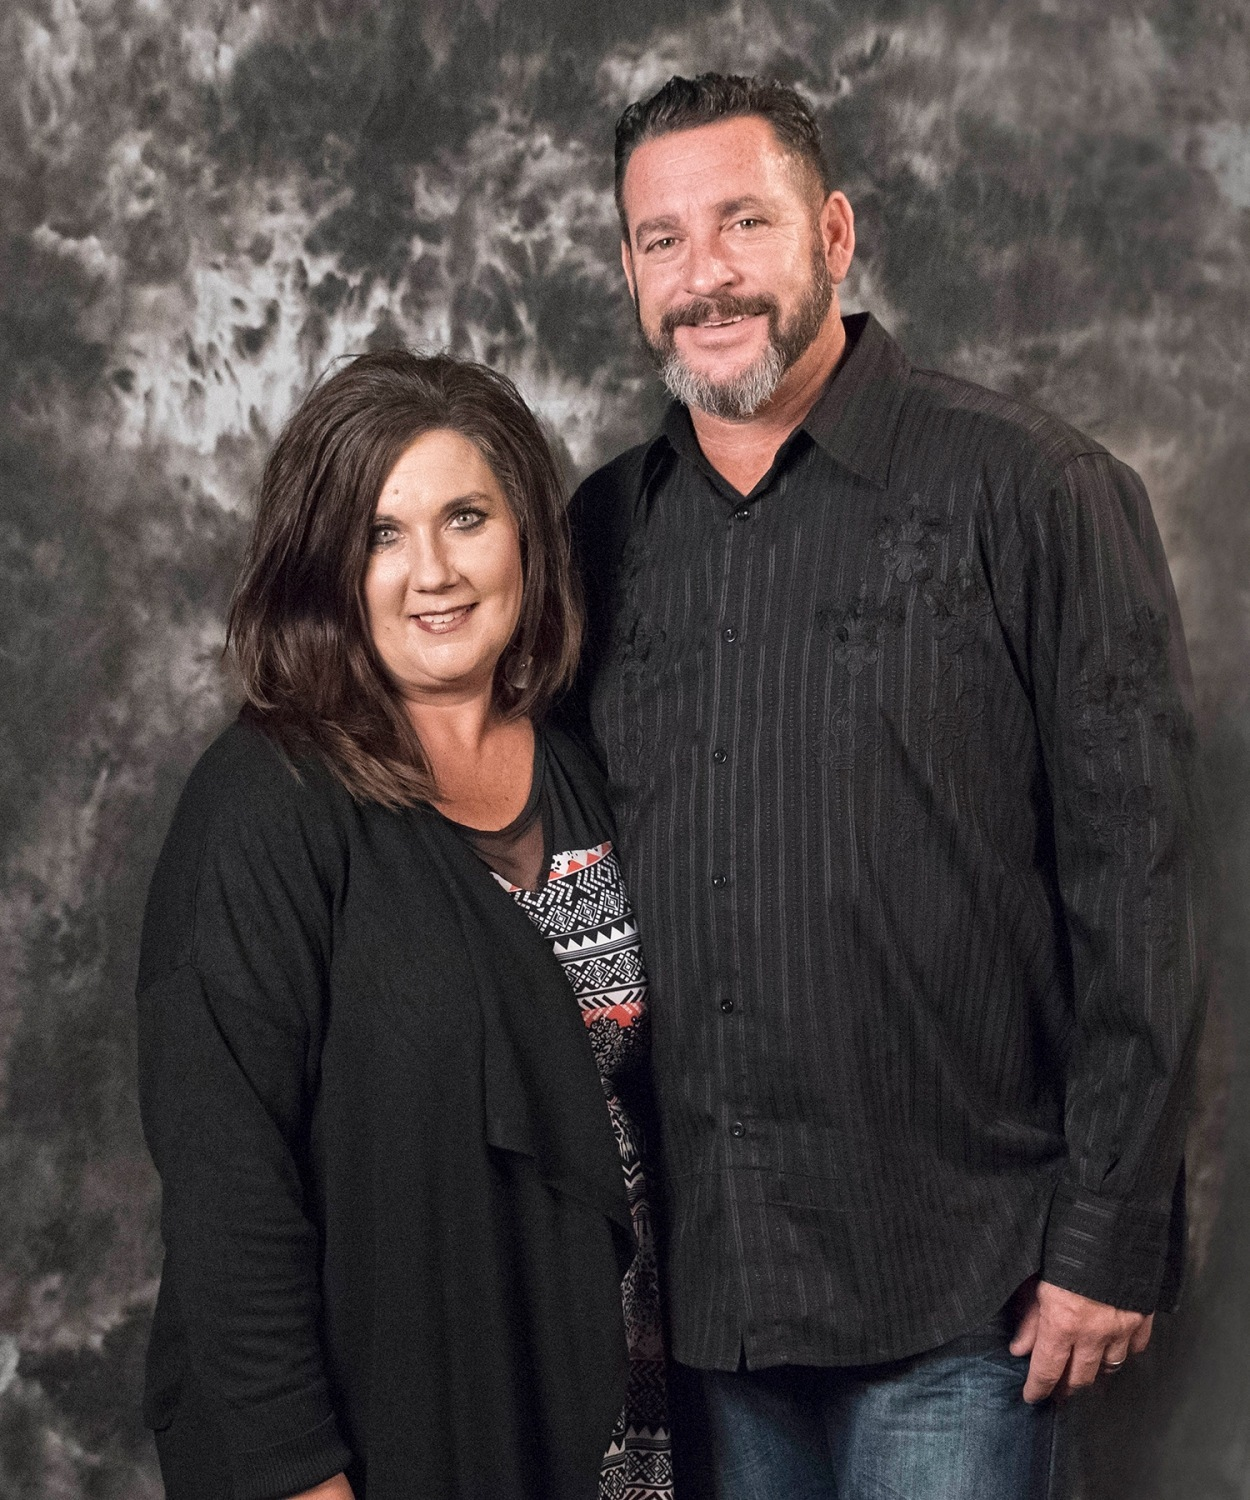 Pastor Cory & Shelly Norton